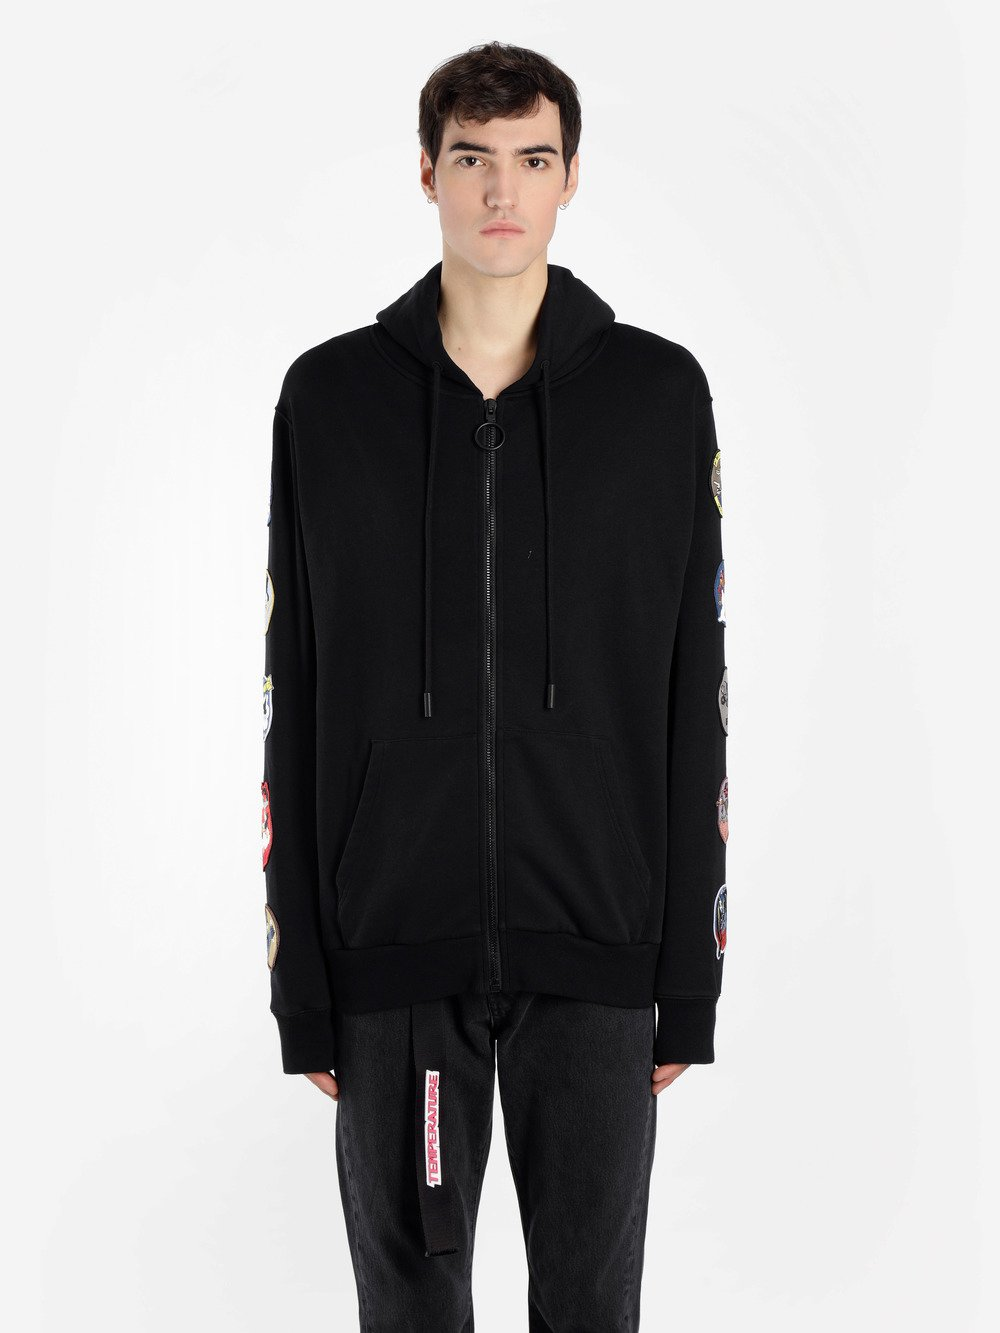 OFF WHITE C/O VIRGIL ABLOH MEN'S BLACK ZIPPED HOODIE WITH PATCHES